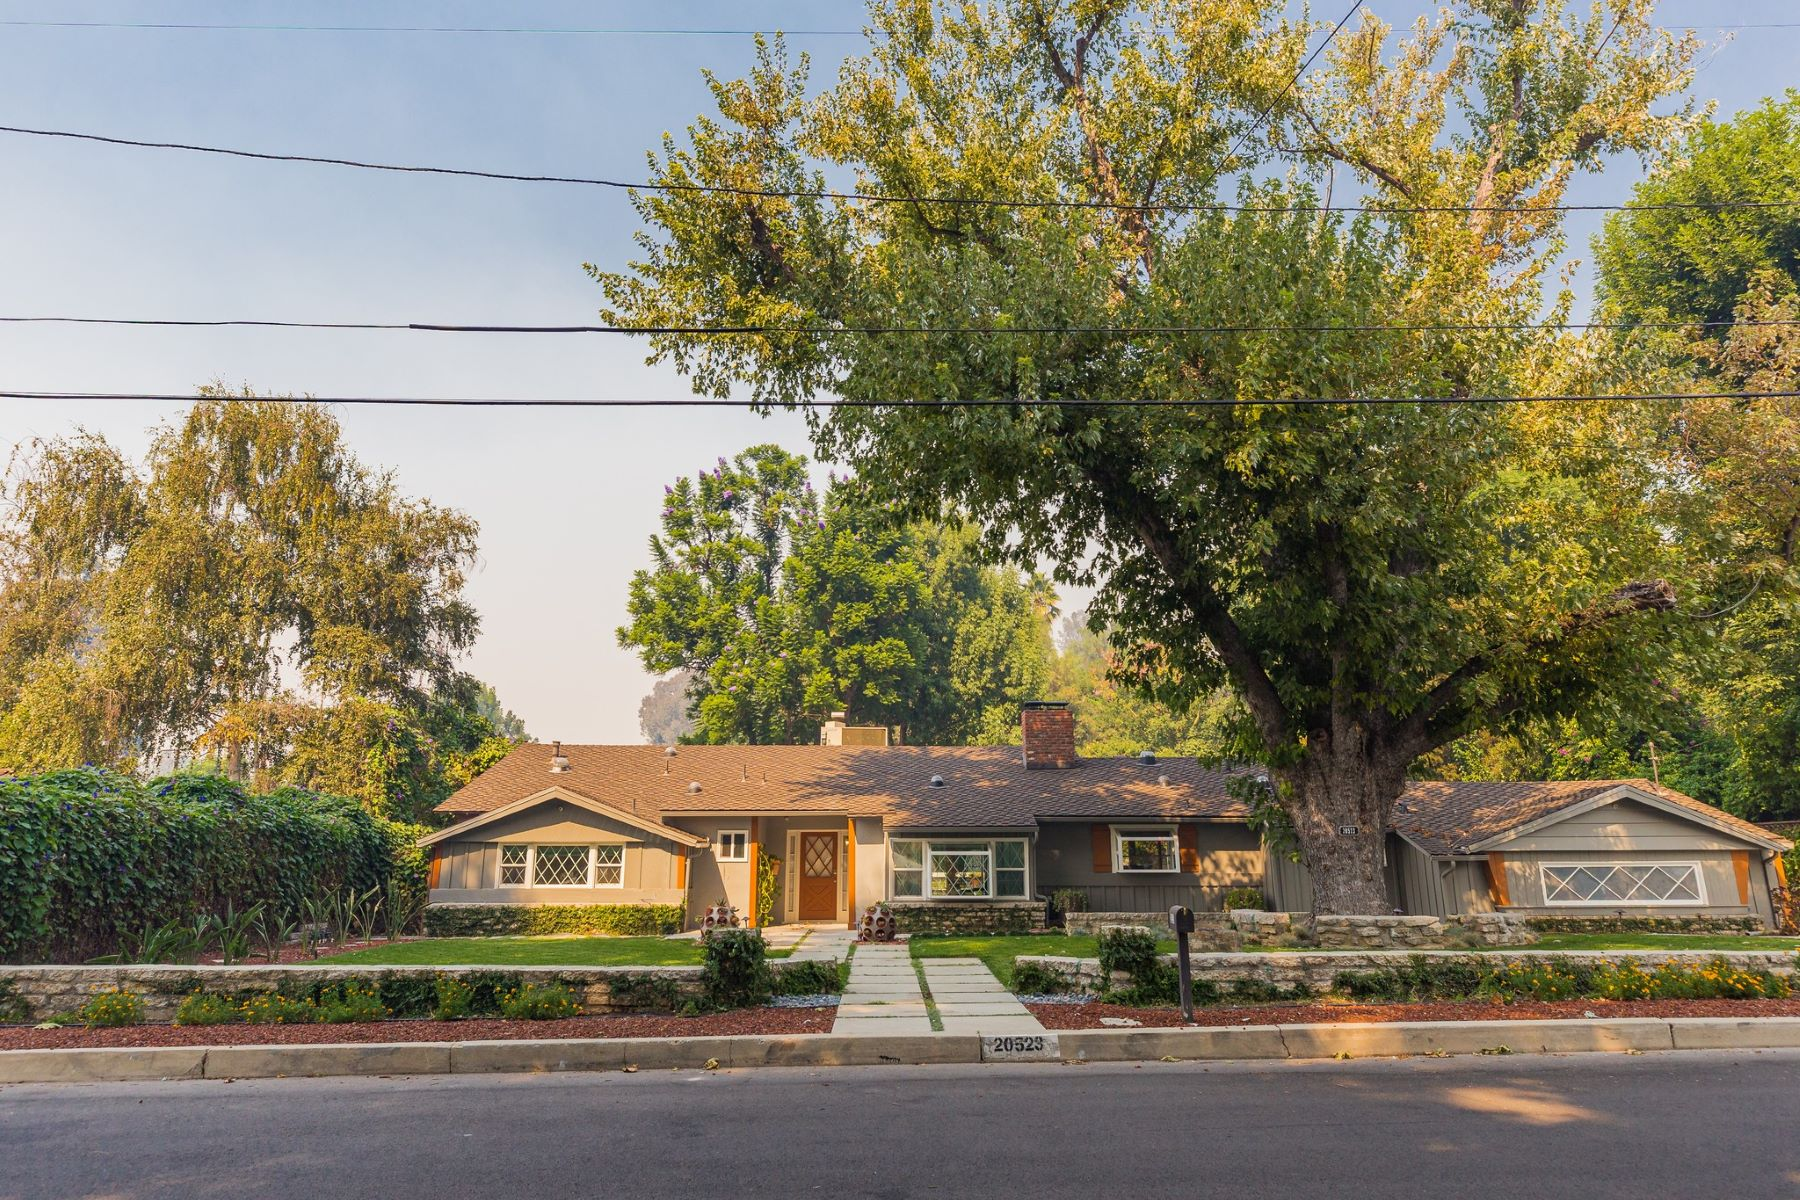 Single Family Homes for Sale at 20523 De Forest Street Woodland Hills, California 91364 United States